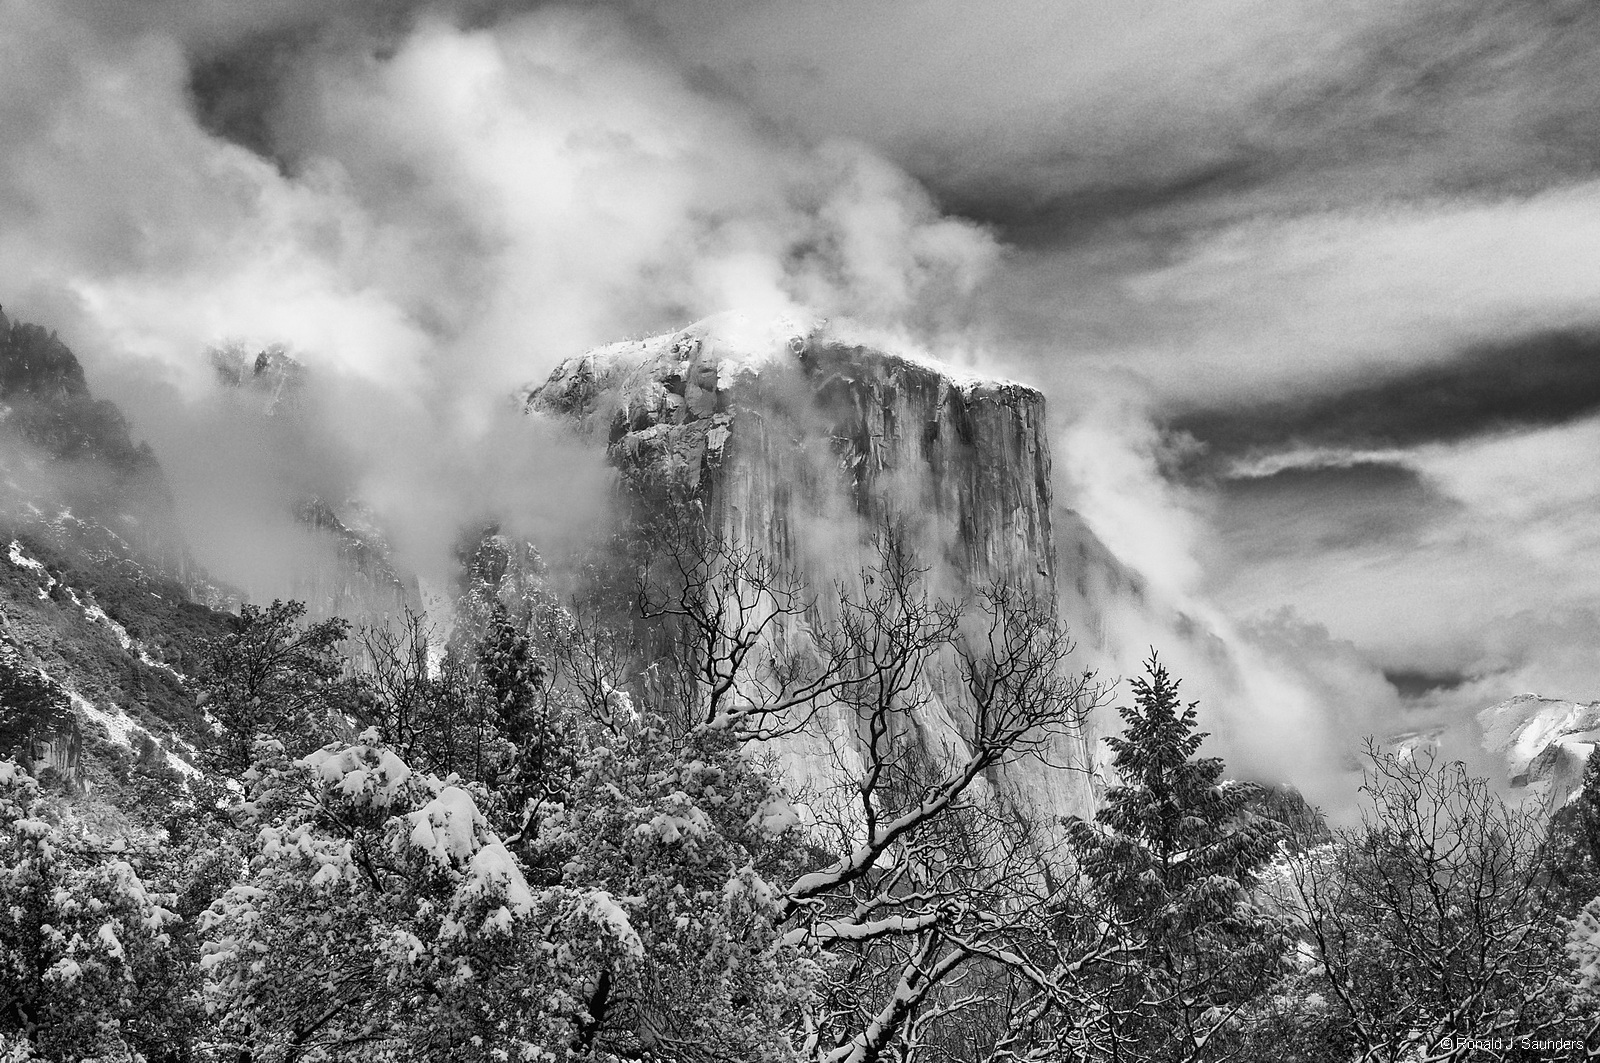 Yet another magnificent view of El Capitan.